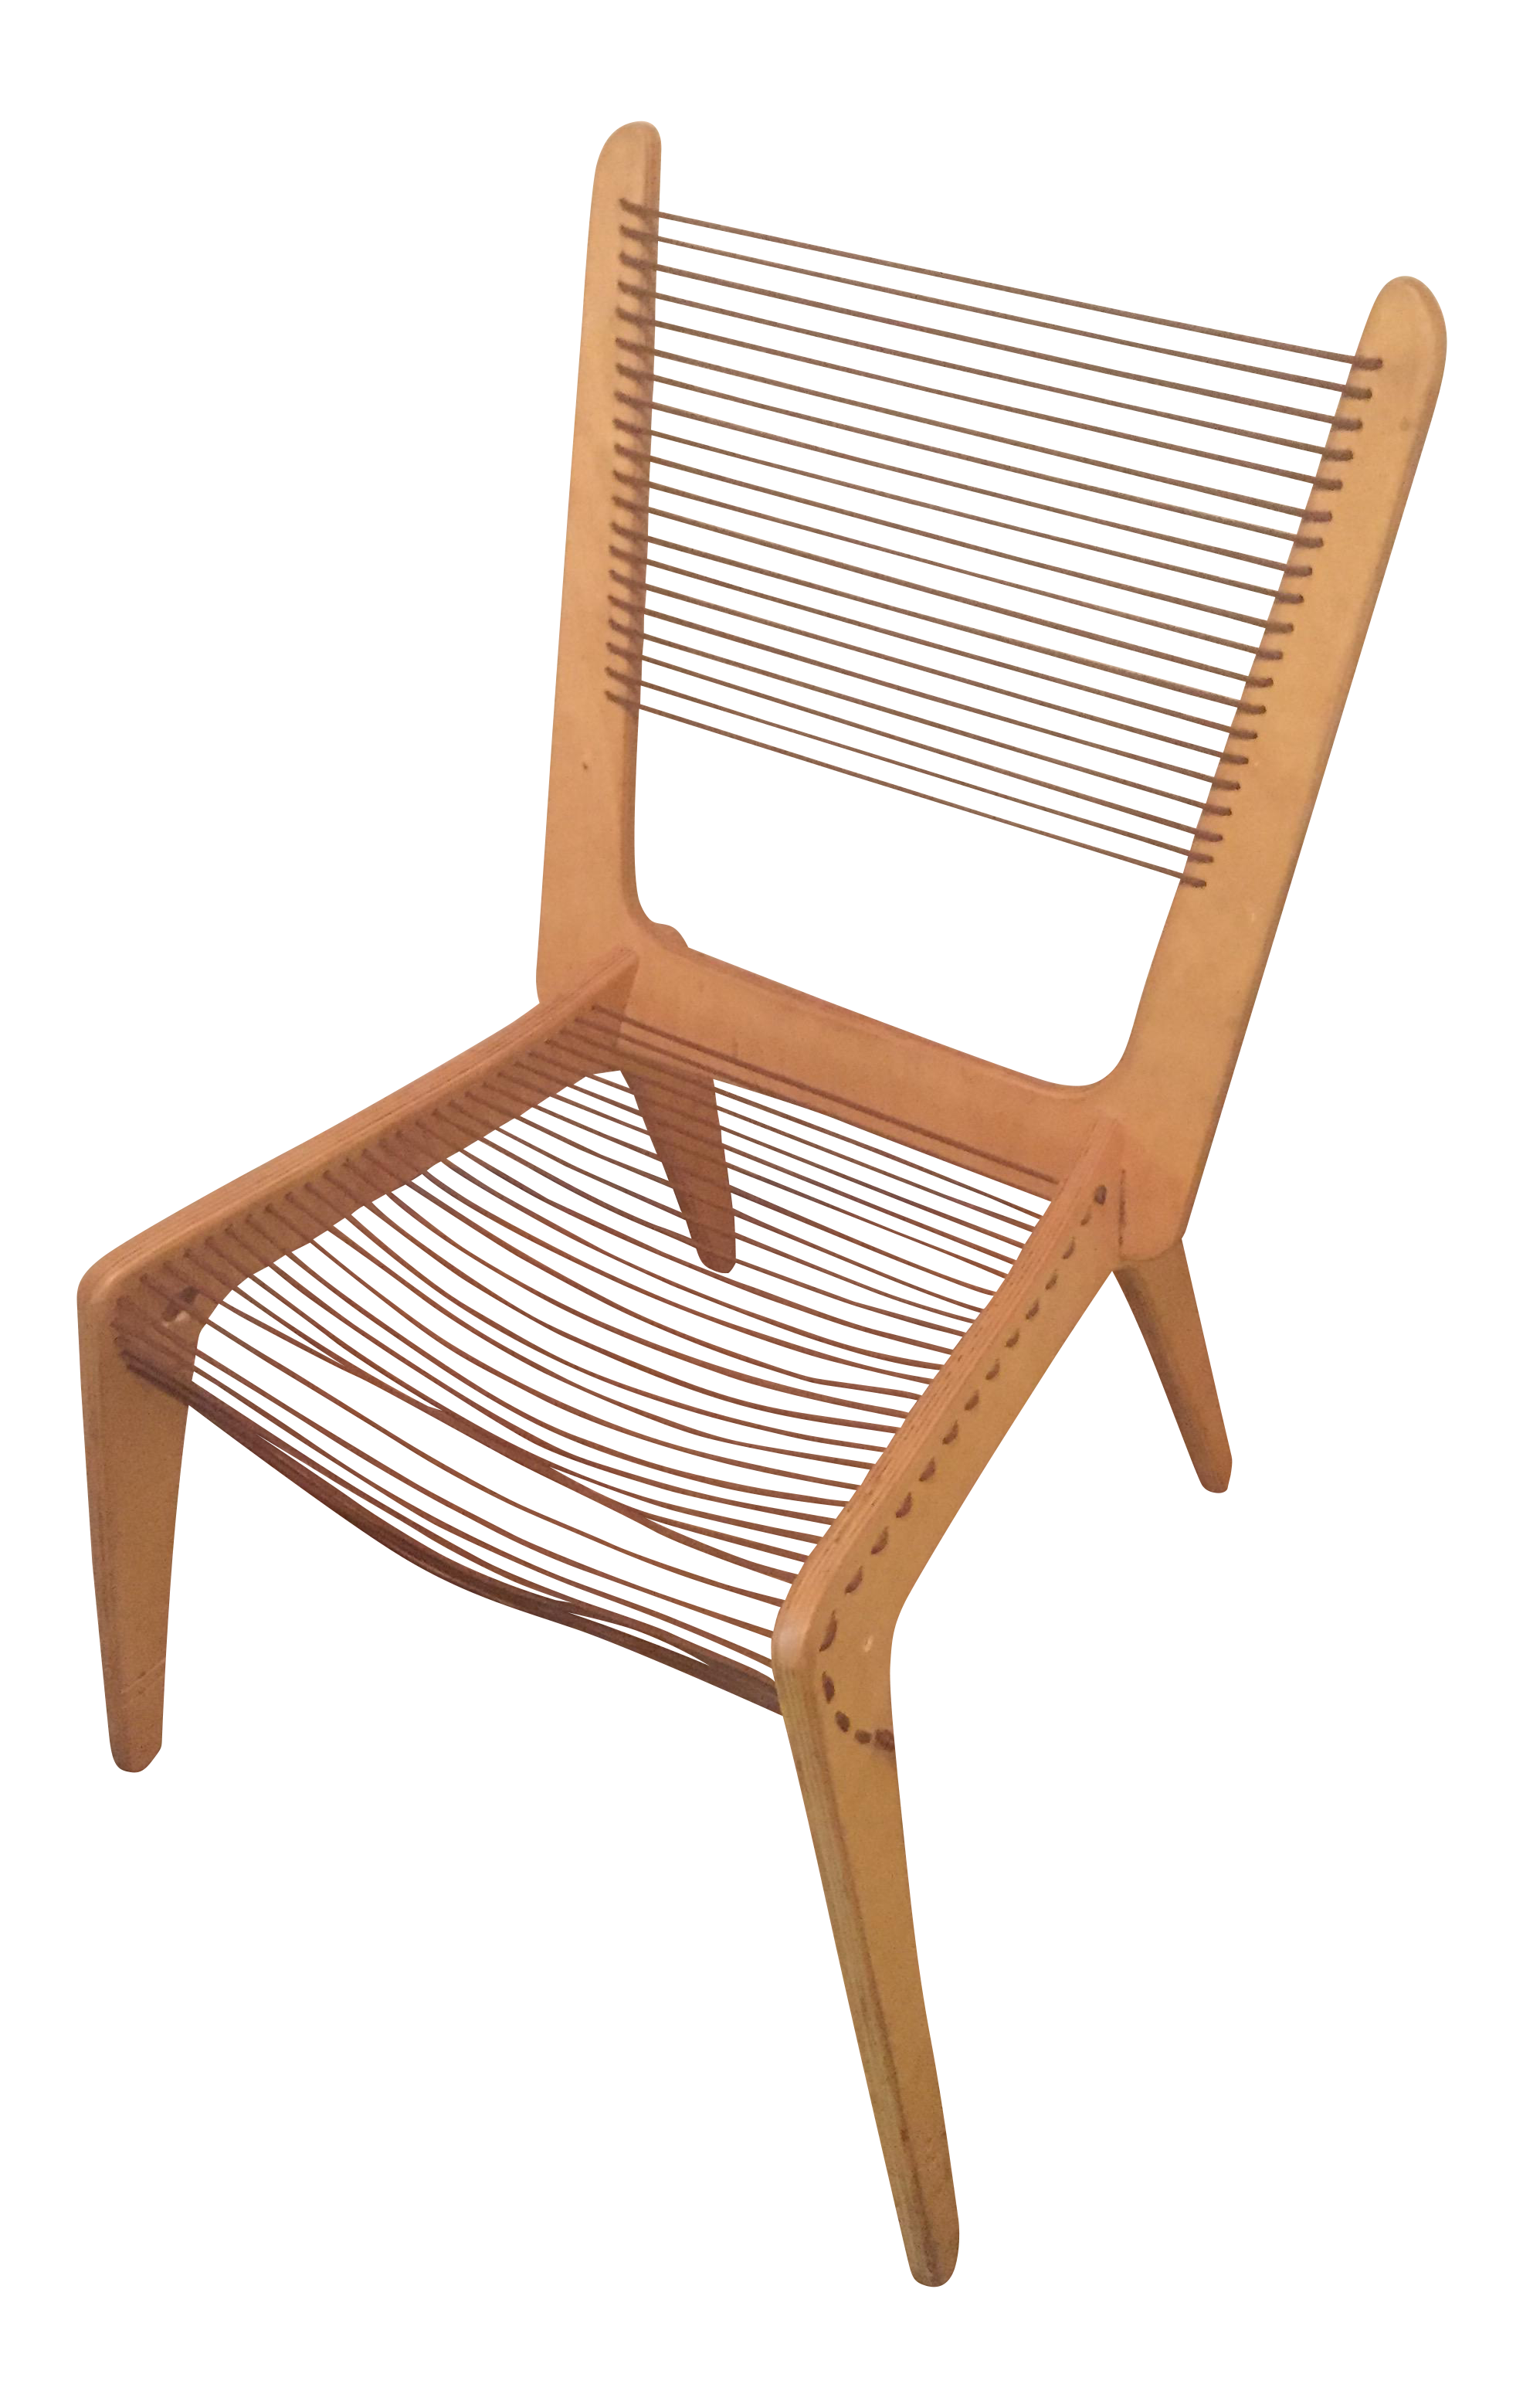 vintage jacques gillon mid century modern cord rope chair chairish rh chairish com Bungee Chair Woven Rope Chair